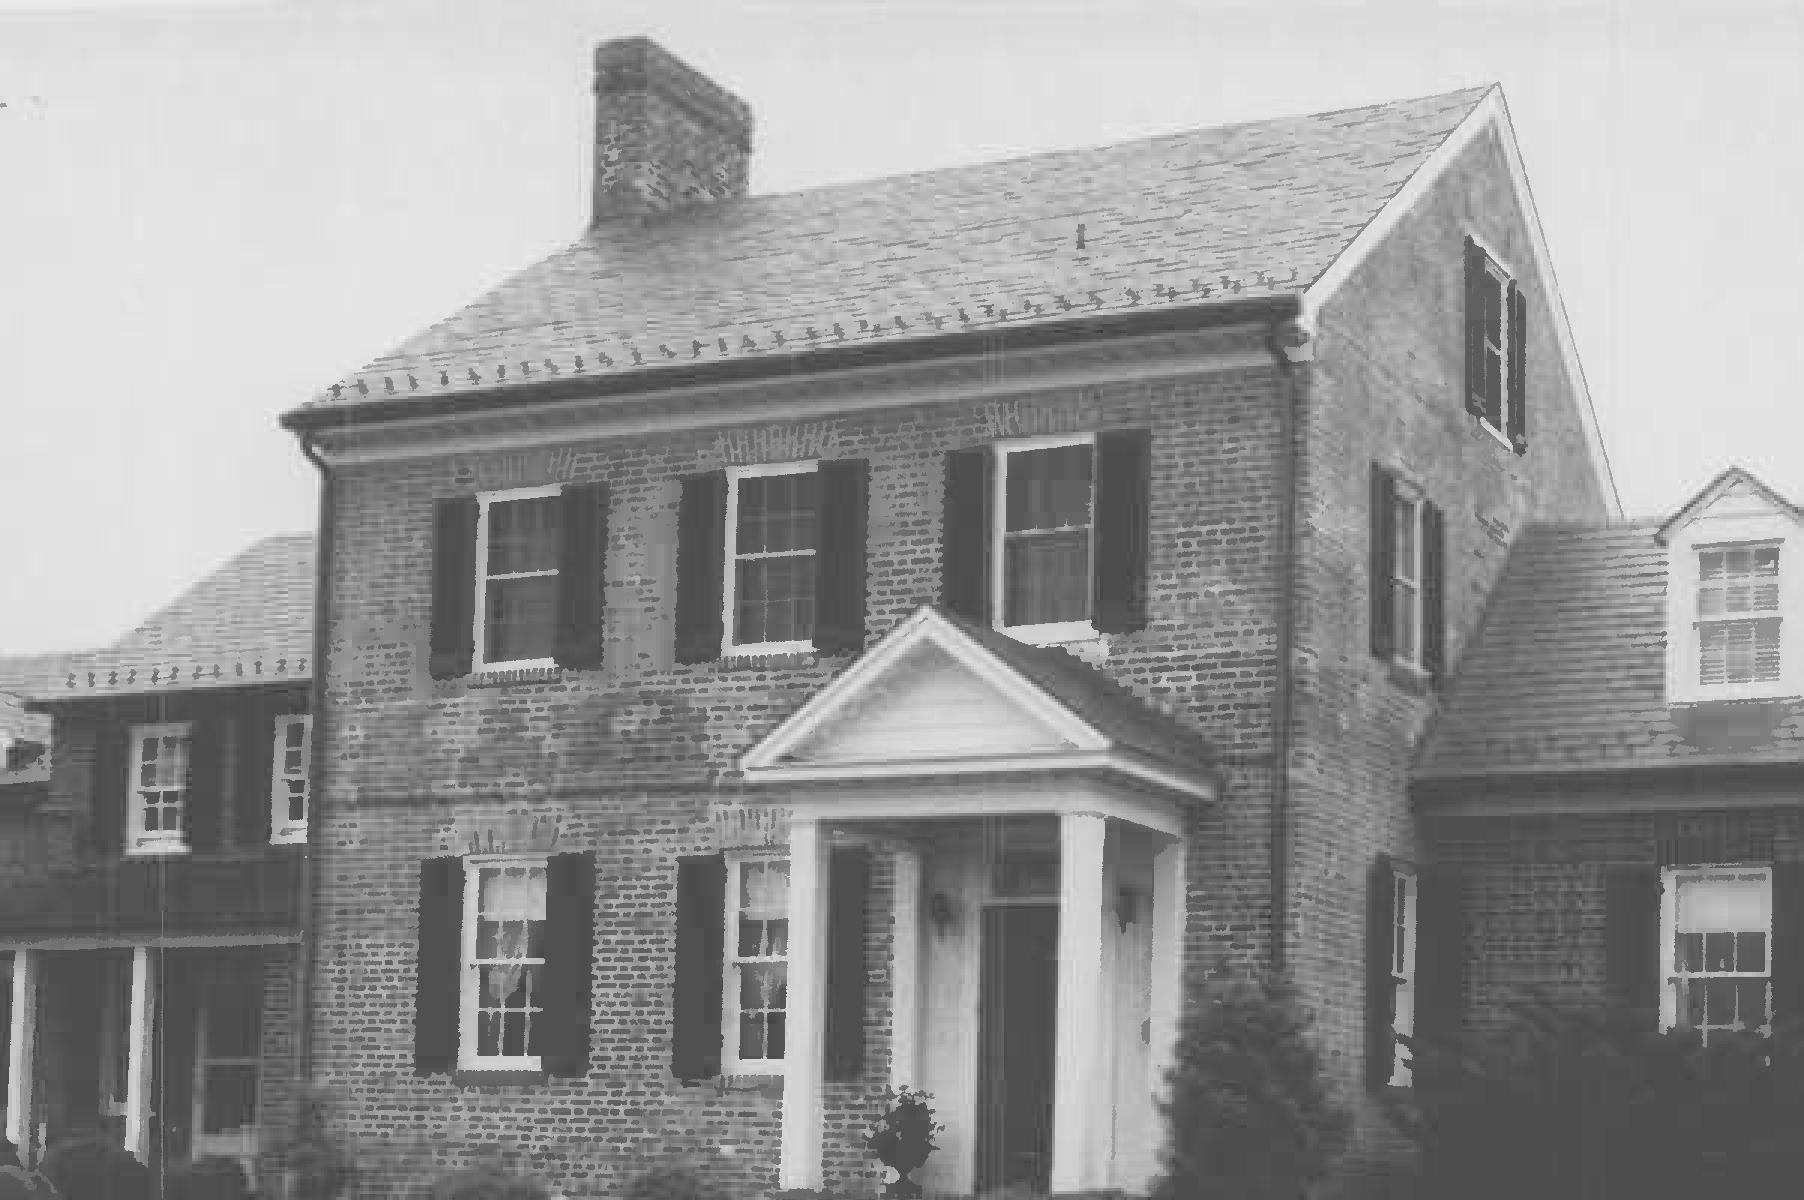 Whites Hall, photo by William D. Morgan in Maryland